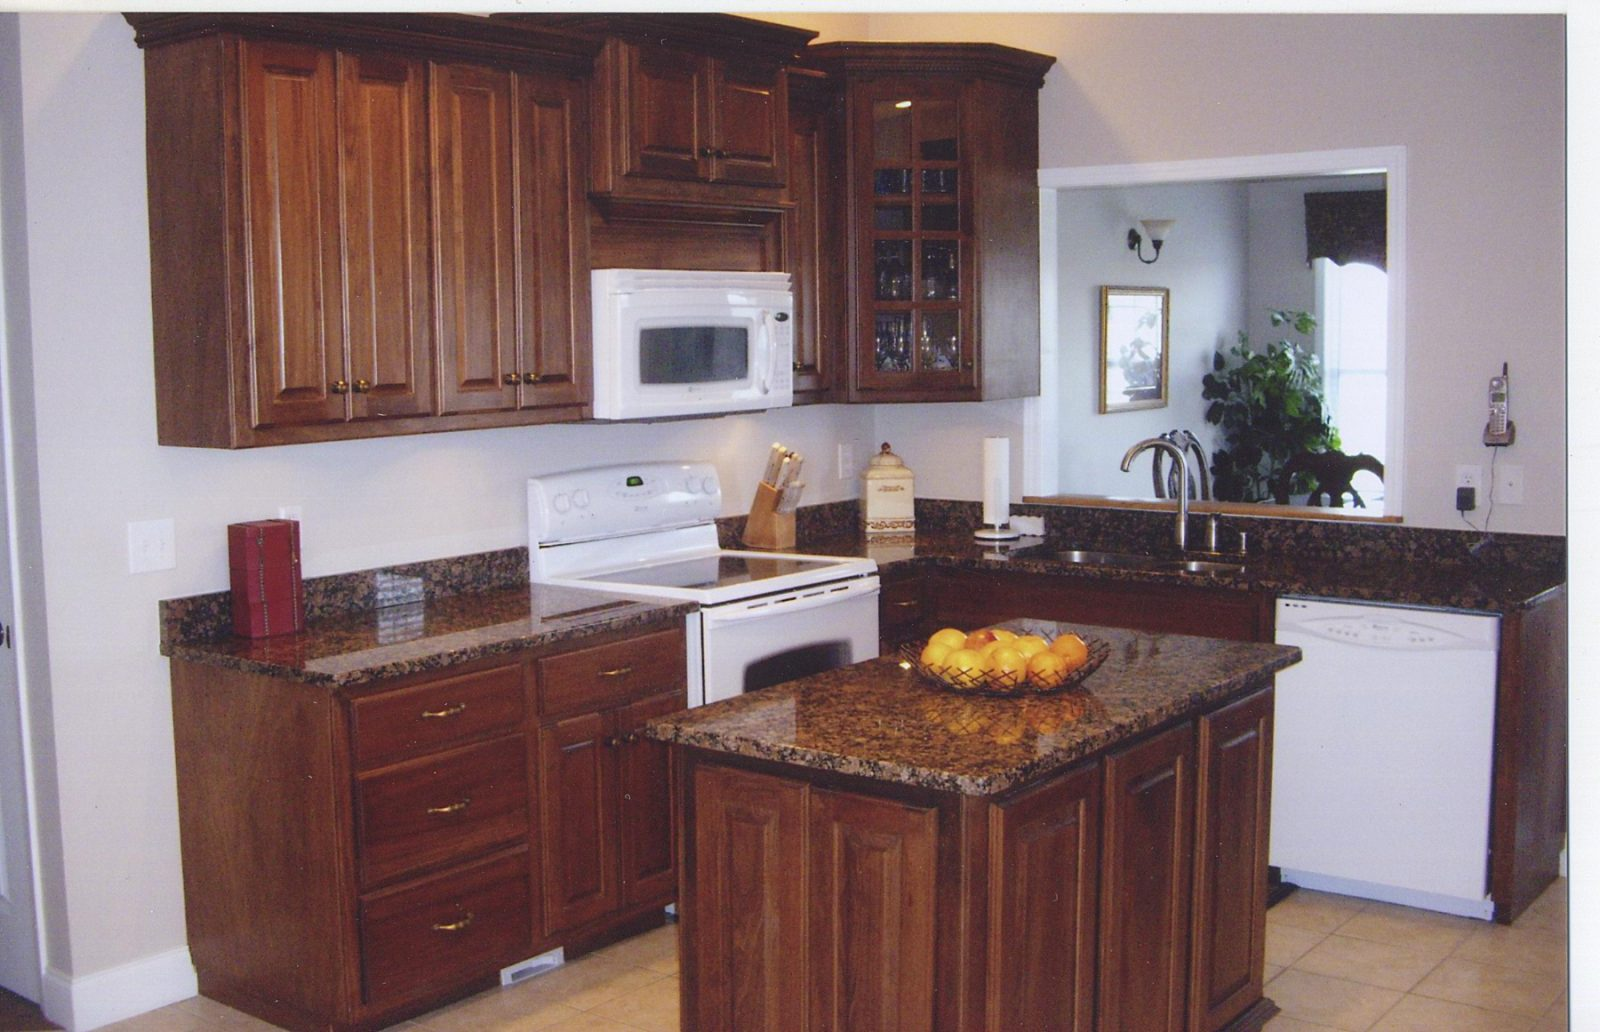 baltic brown kitchen with cherry cabinets and white appliances Quotes